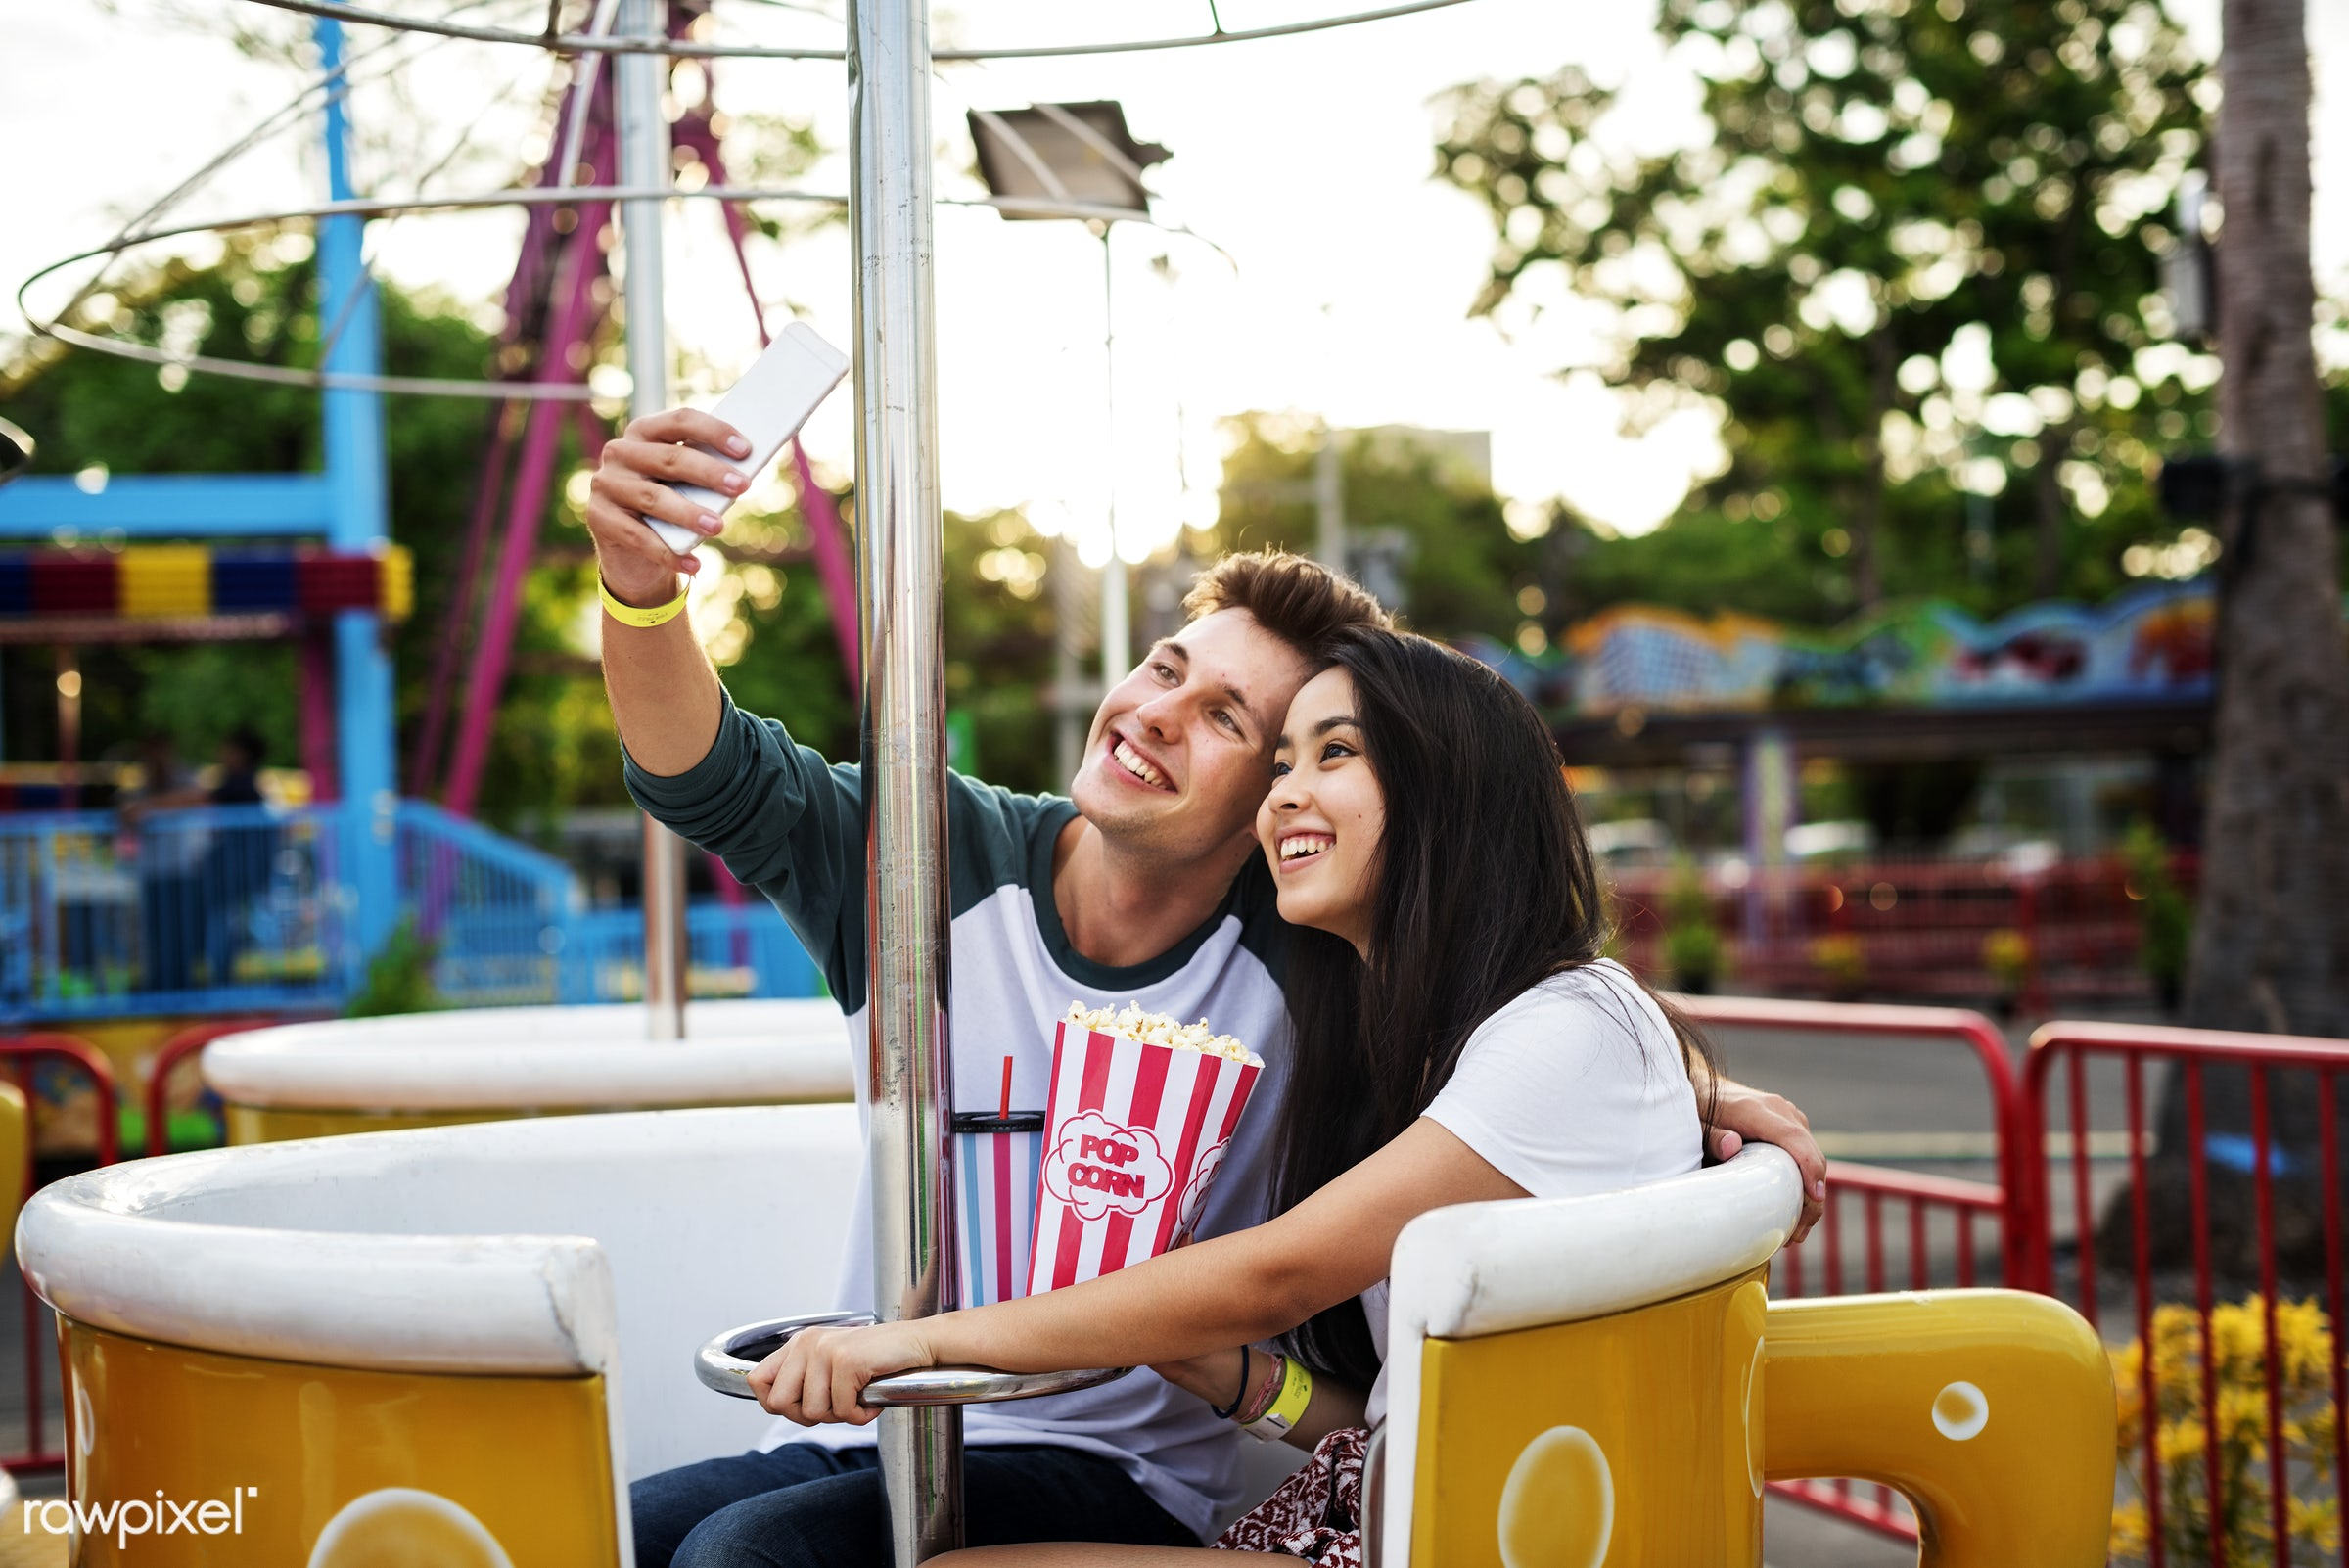 adorable, affectionate, american, amusement, amusement park, asian, beautiful, black hair, boyfriend, bright, candid, care,...